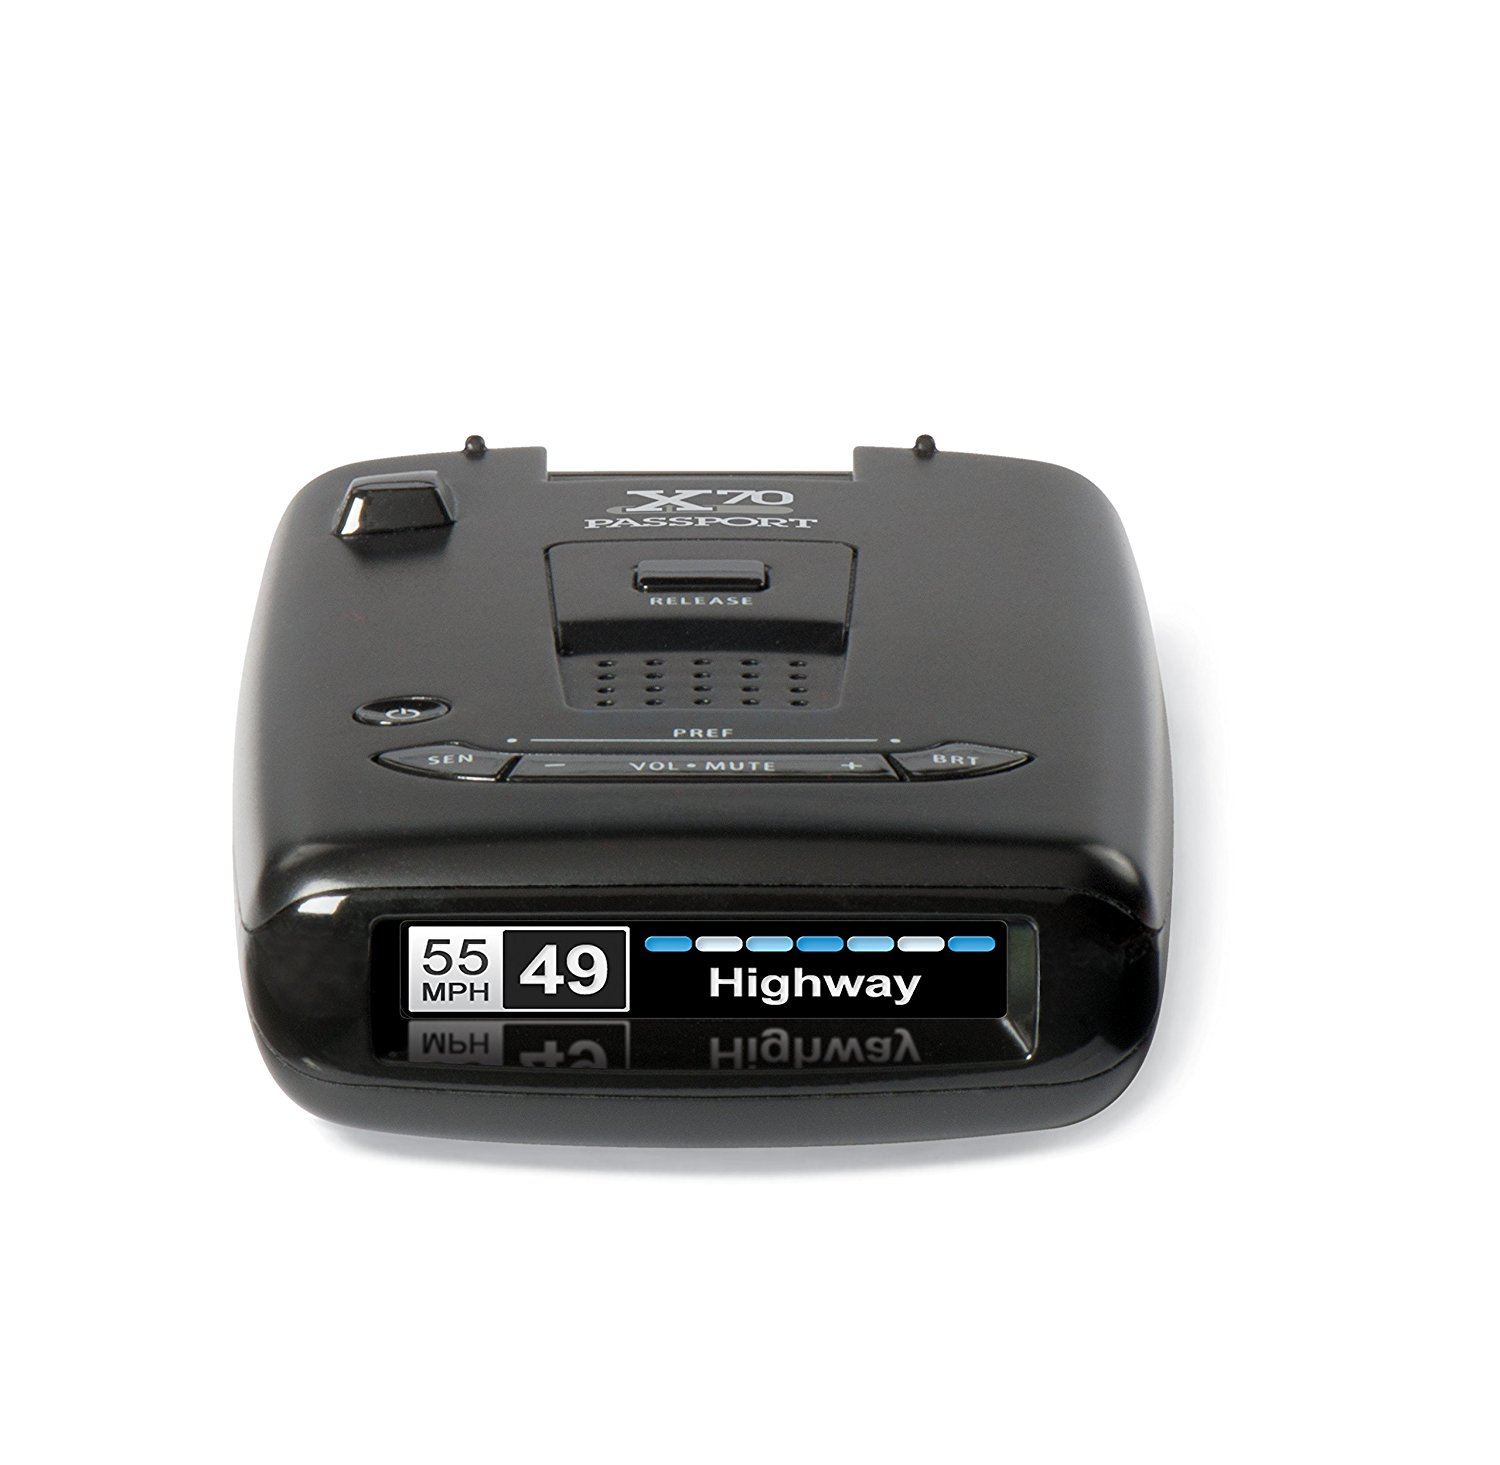 Escort Passport X70, escort radar, best escort radar detector